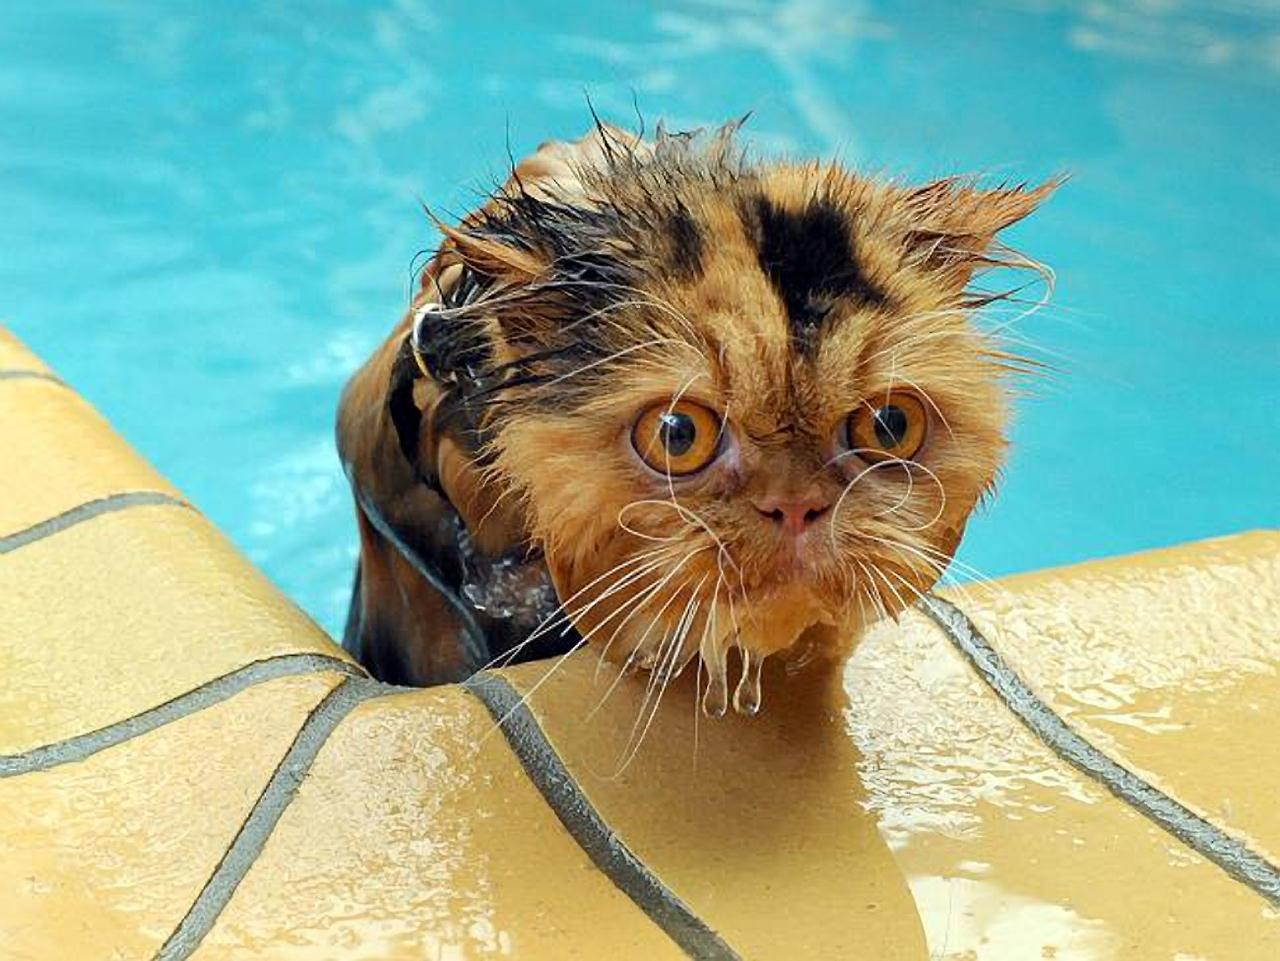 ✲ LIKE A FISH WITHOUT FINS TO SWIM (eliott) Funny-cats-swimming-cat-fetch--5147